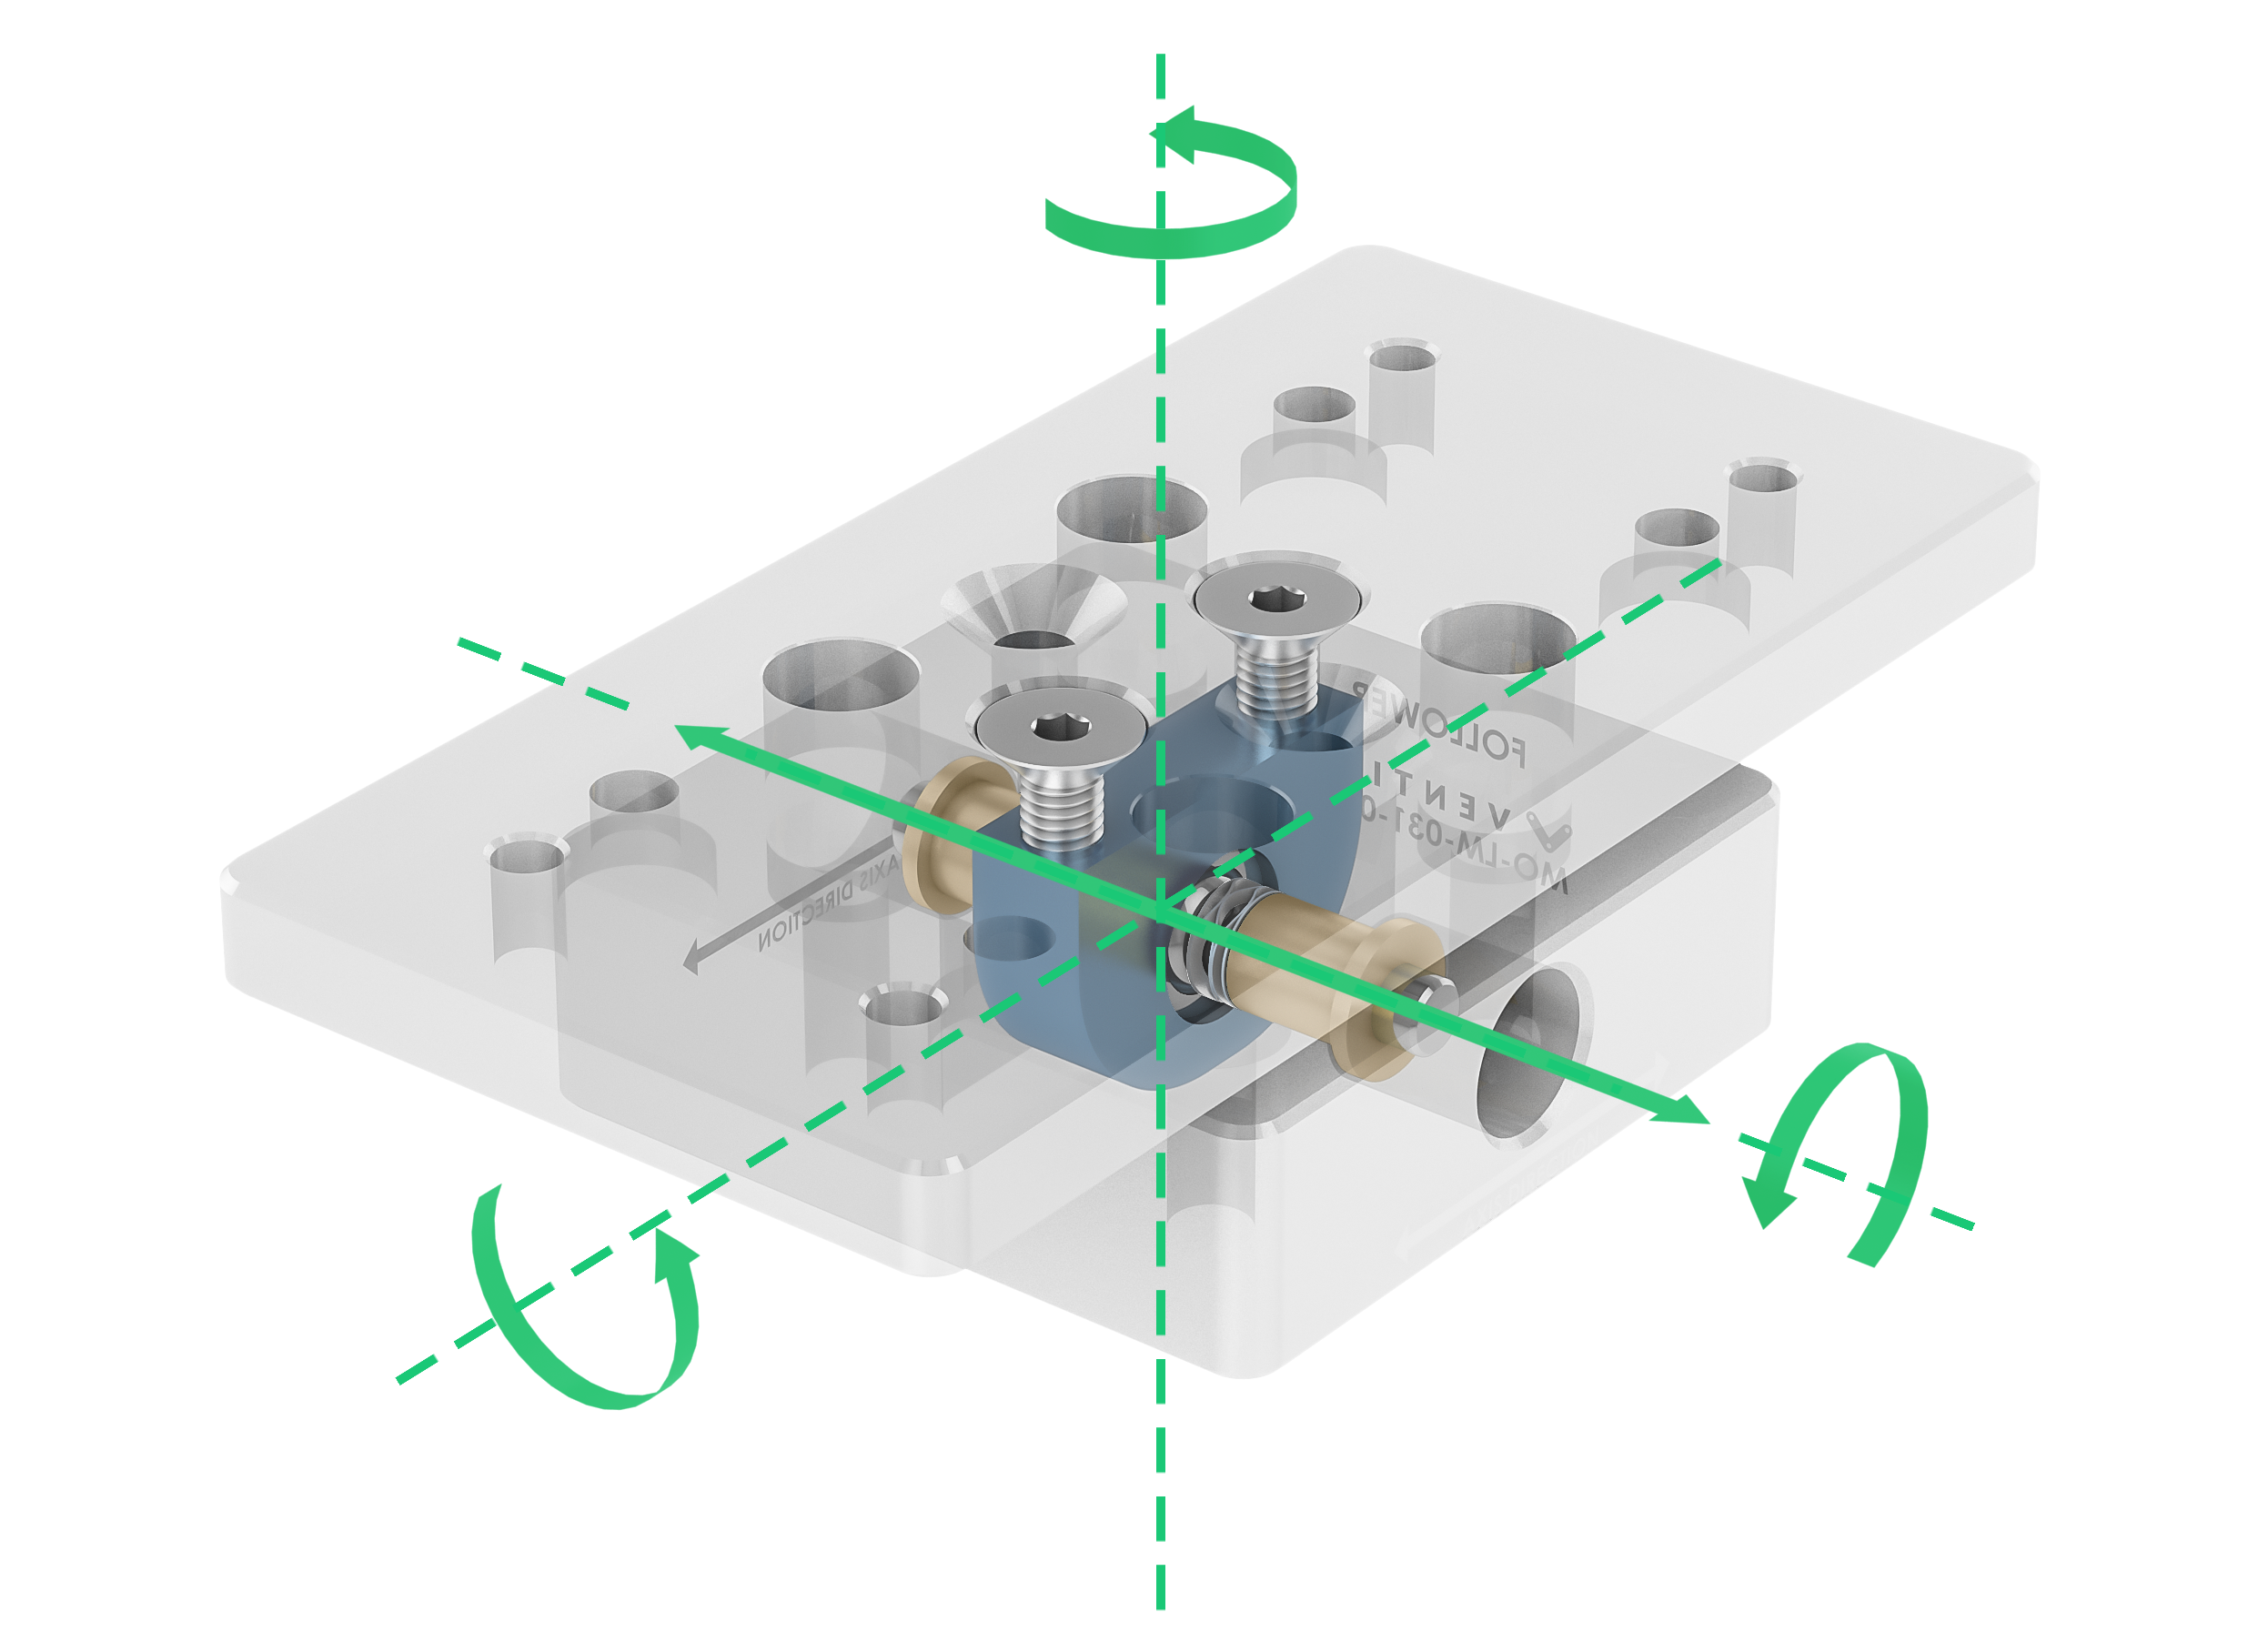 Figure 2: Self-aligning follower mount, with degrees of freedom (three rotational and one translational) indicated by solid green arrows.